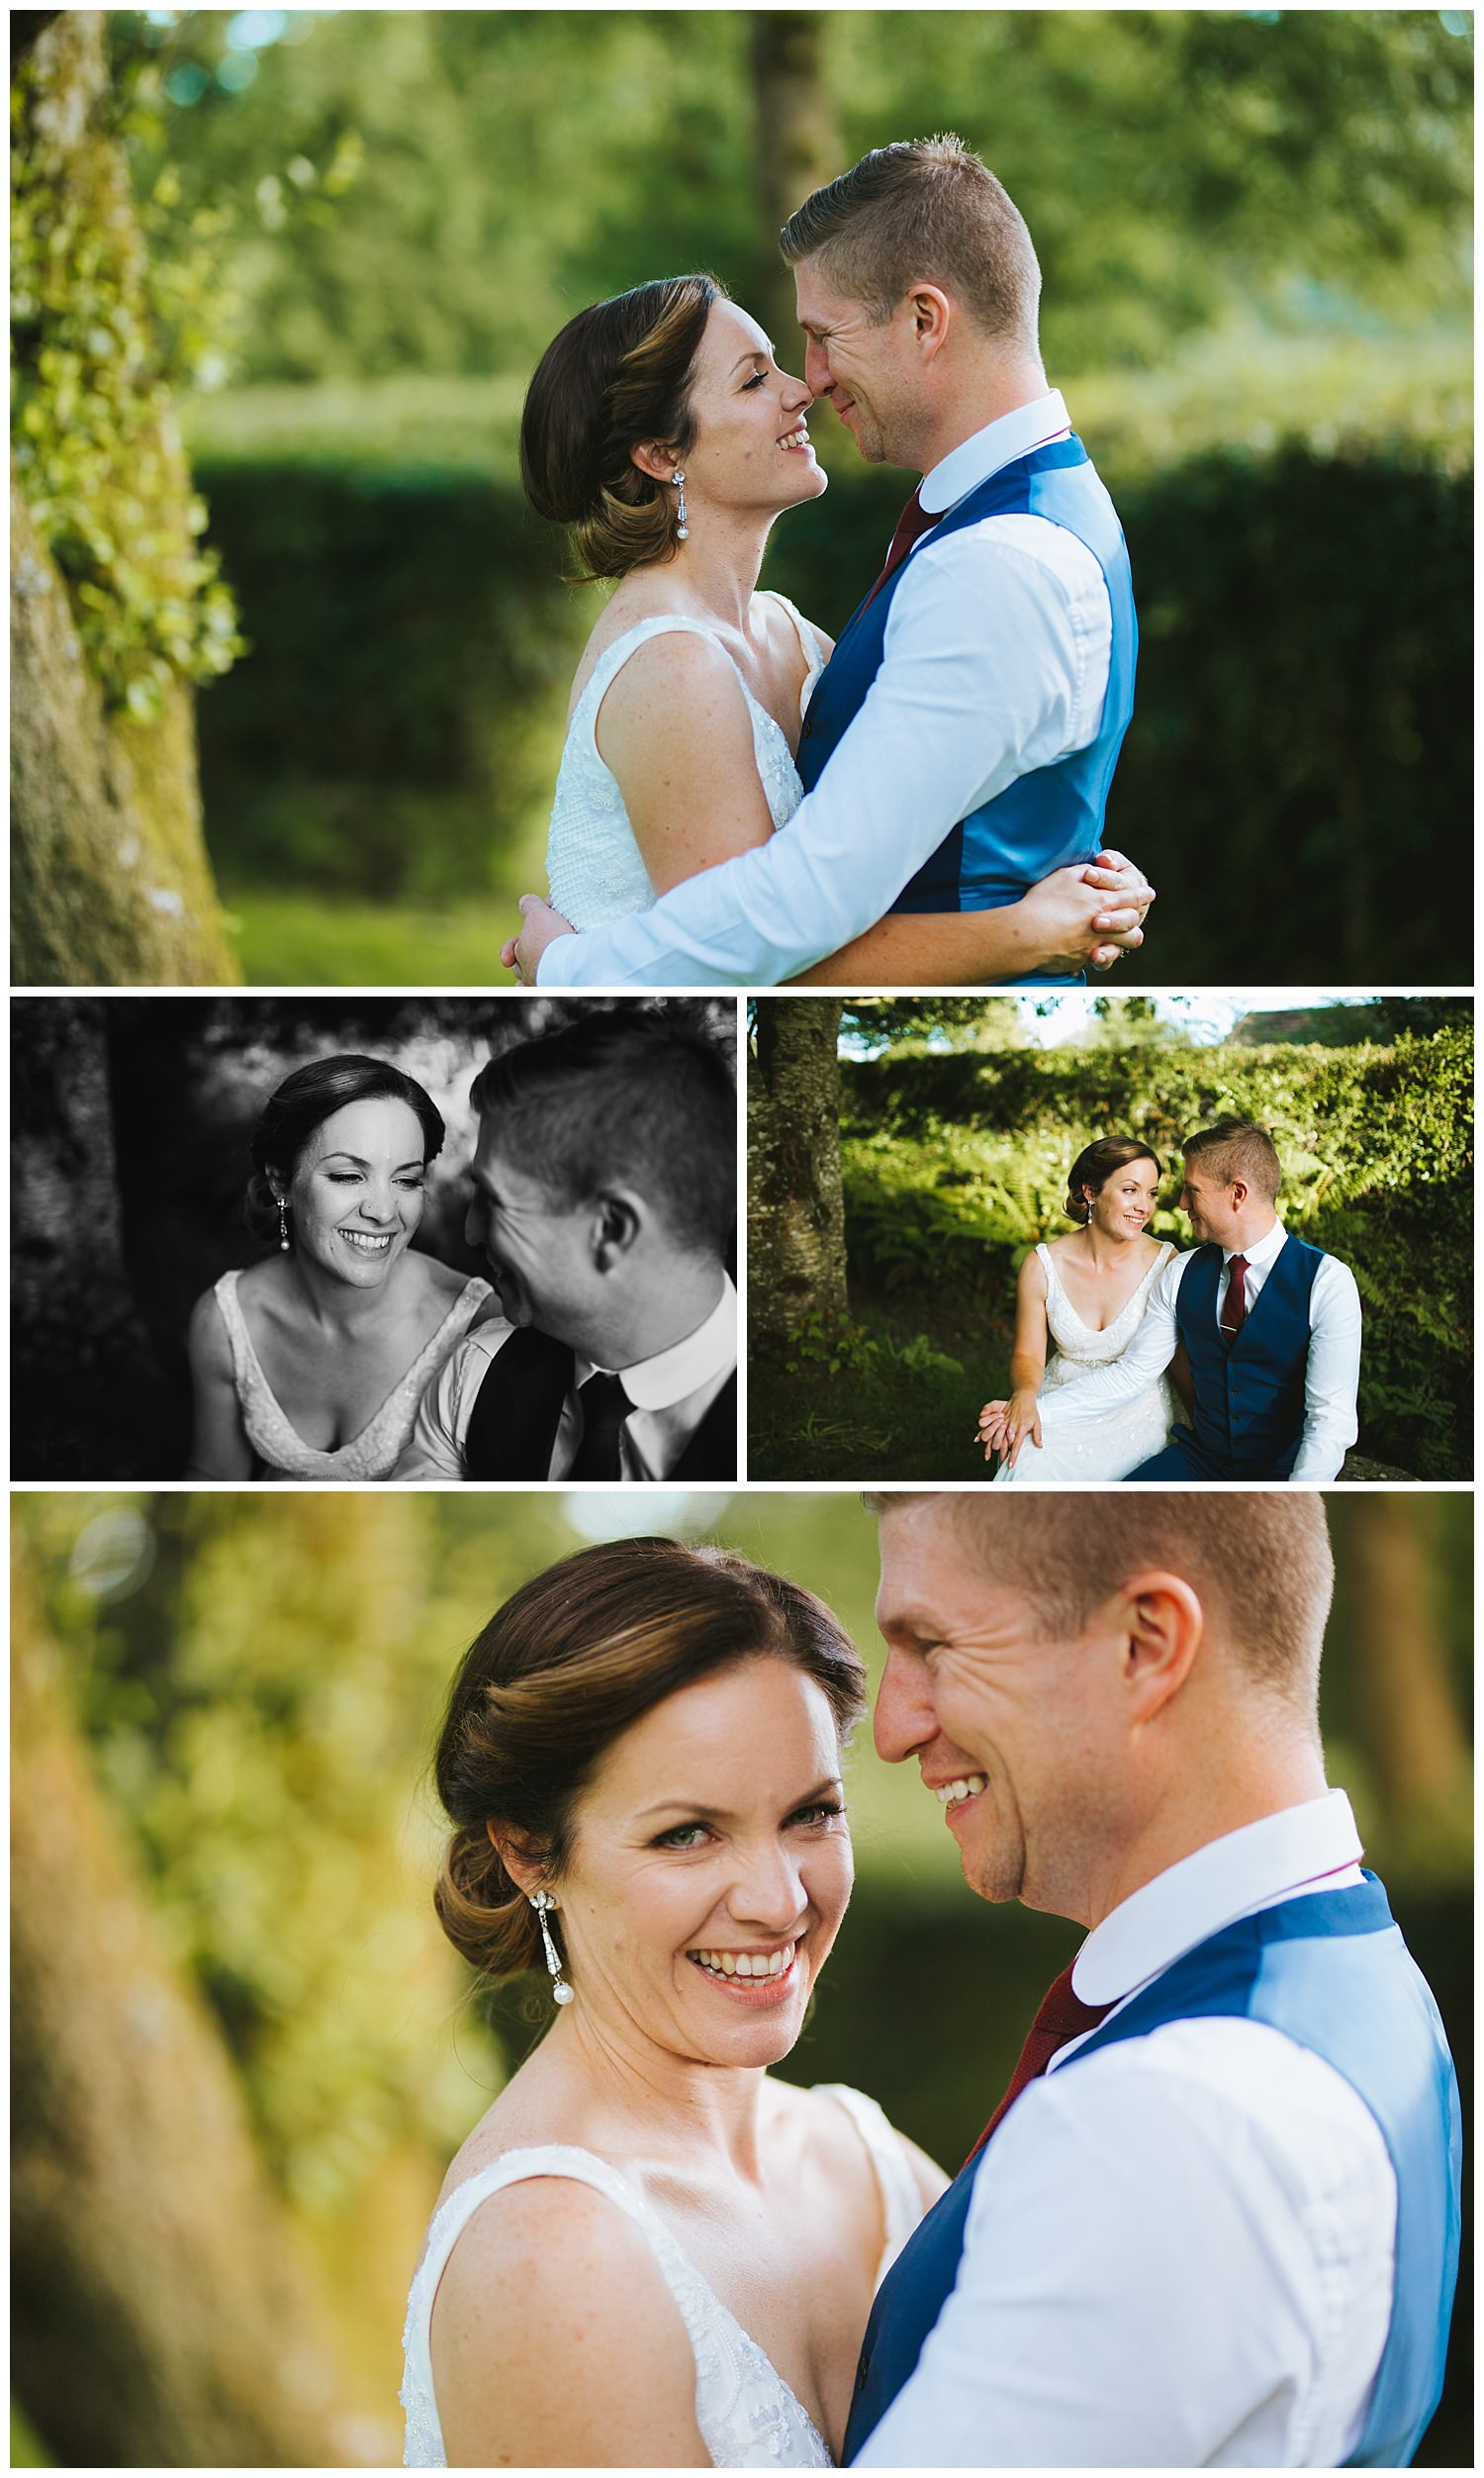 e+t_ballilogue_kilkenny_wedding_photographer_liviafigueiredo_212.jpg